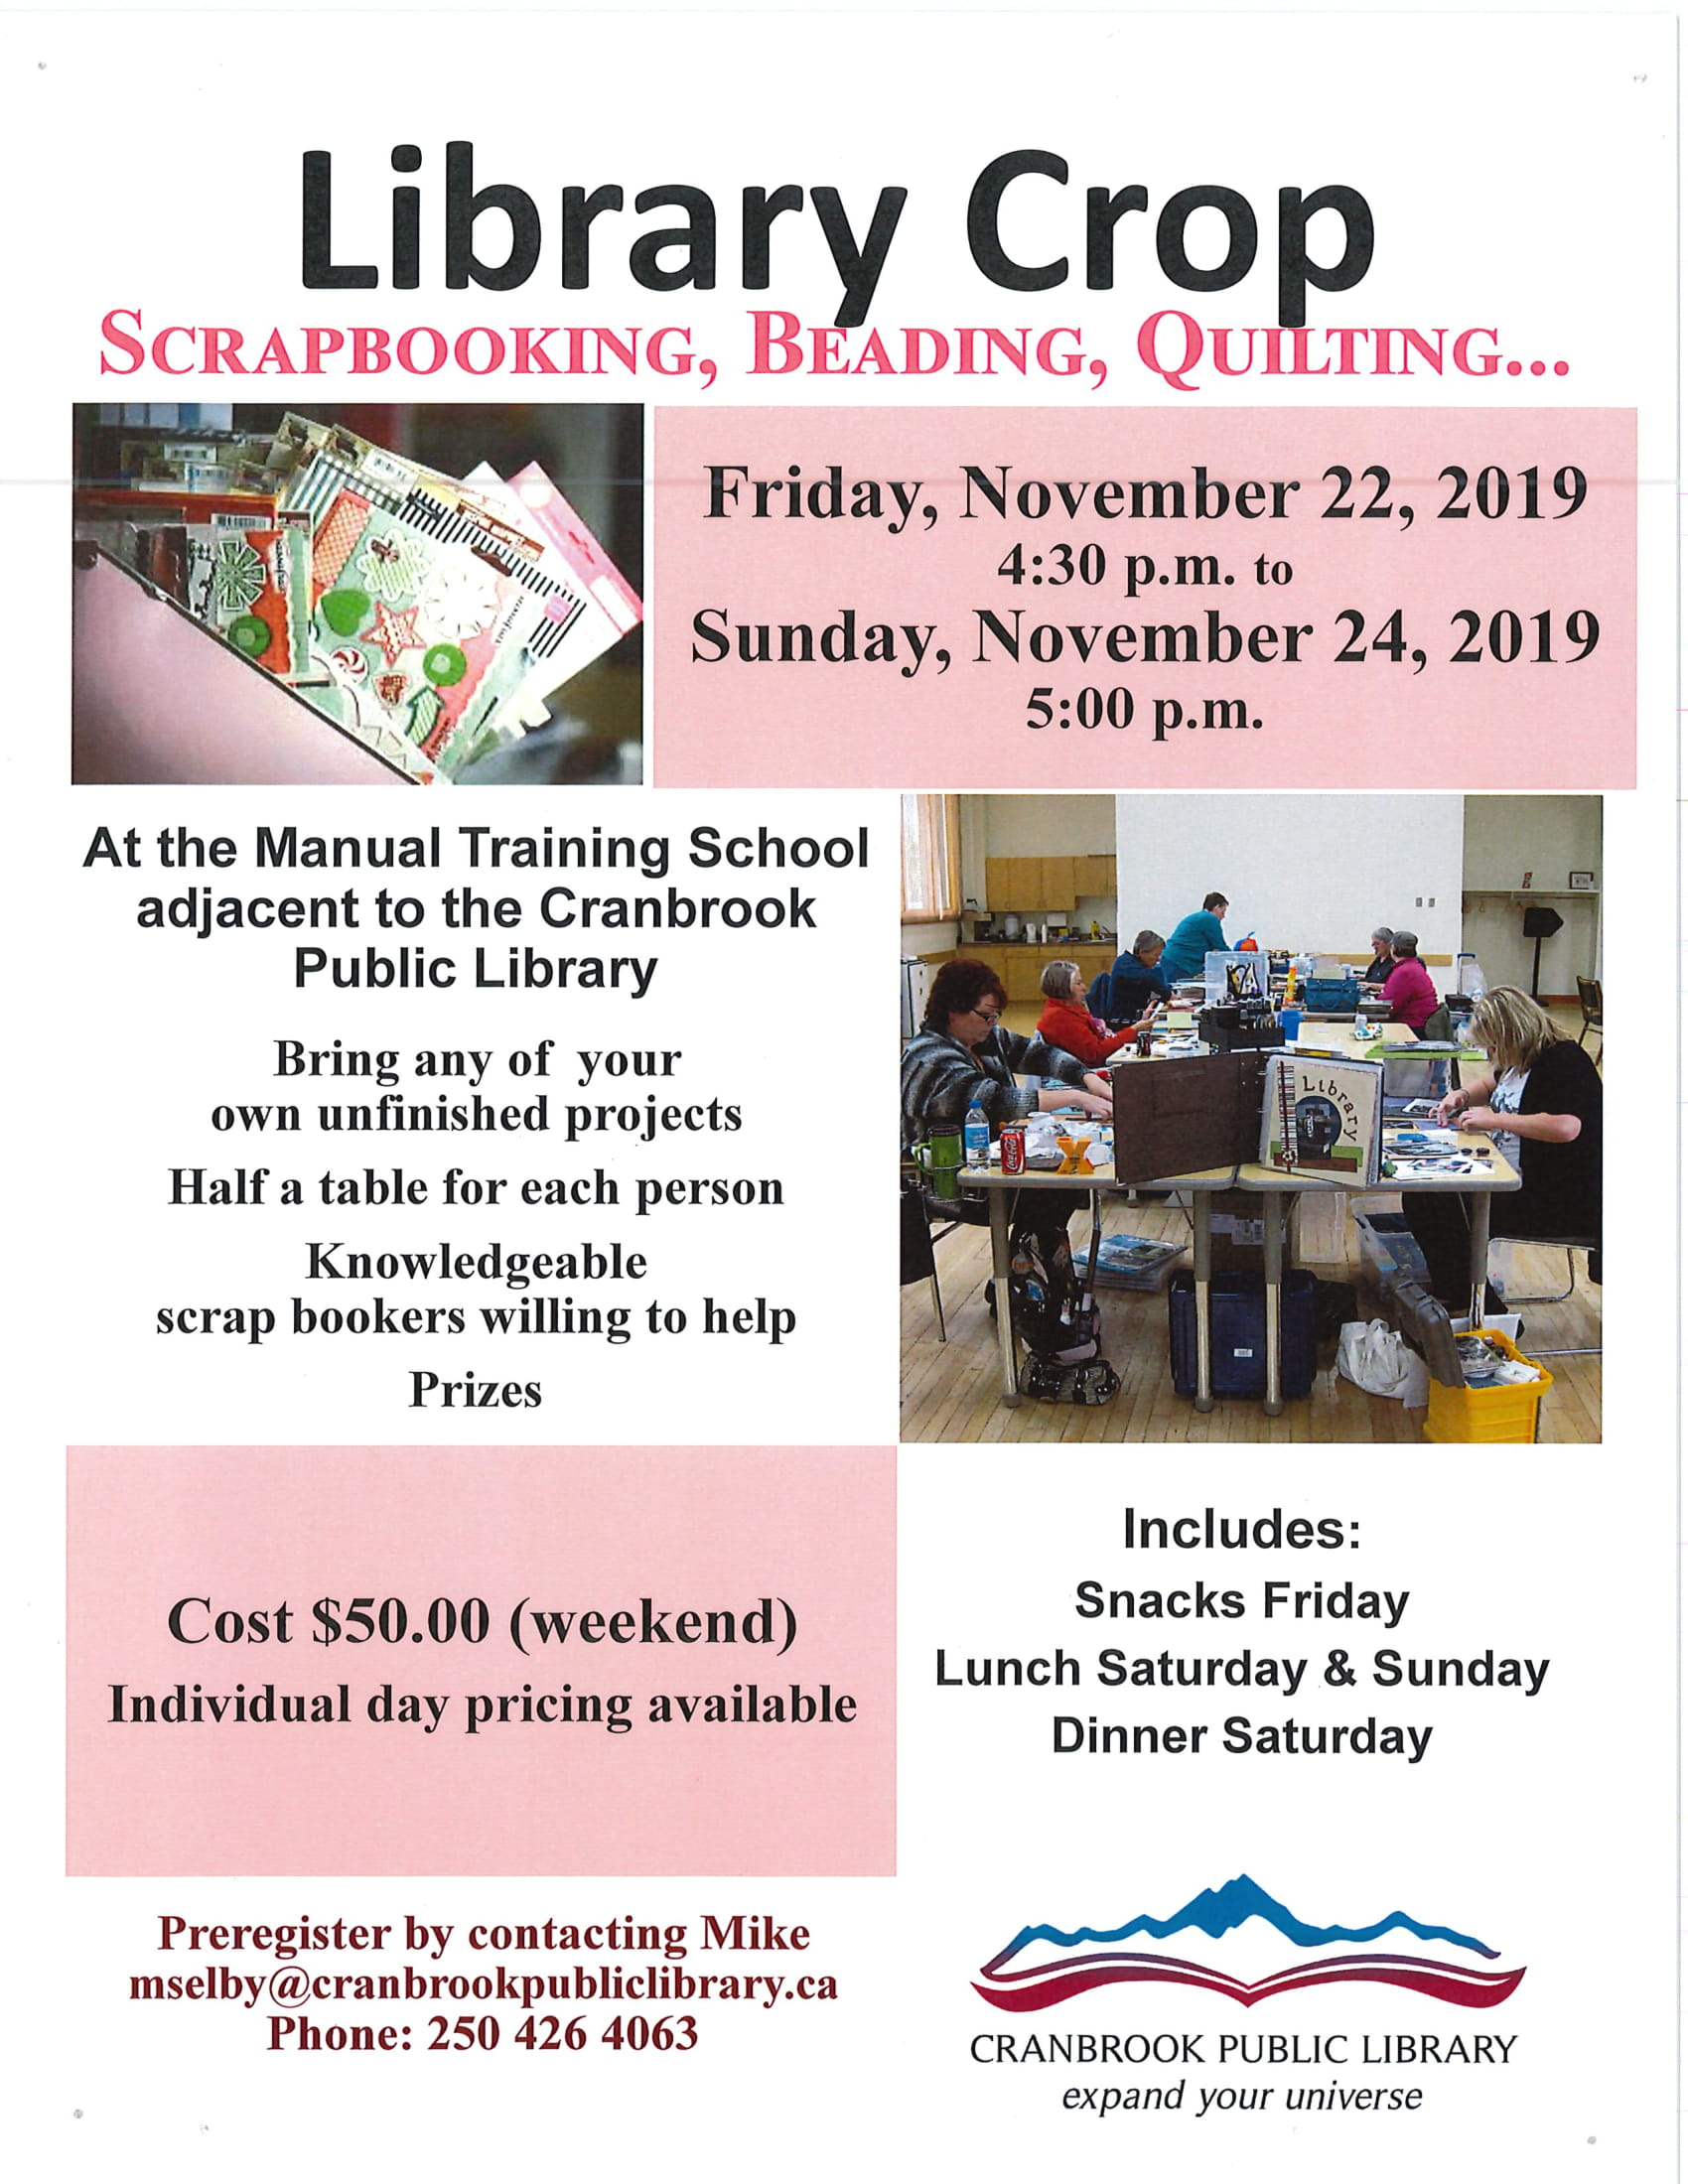 Fall 2019 Scrap Booking Weekend Day 2 @ Cranbrook Public Library Manual Training Room